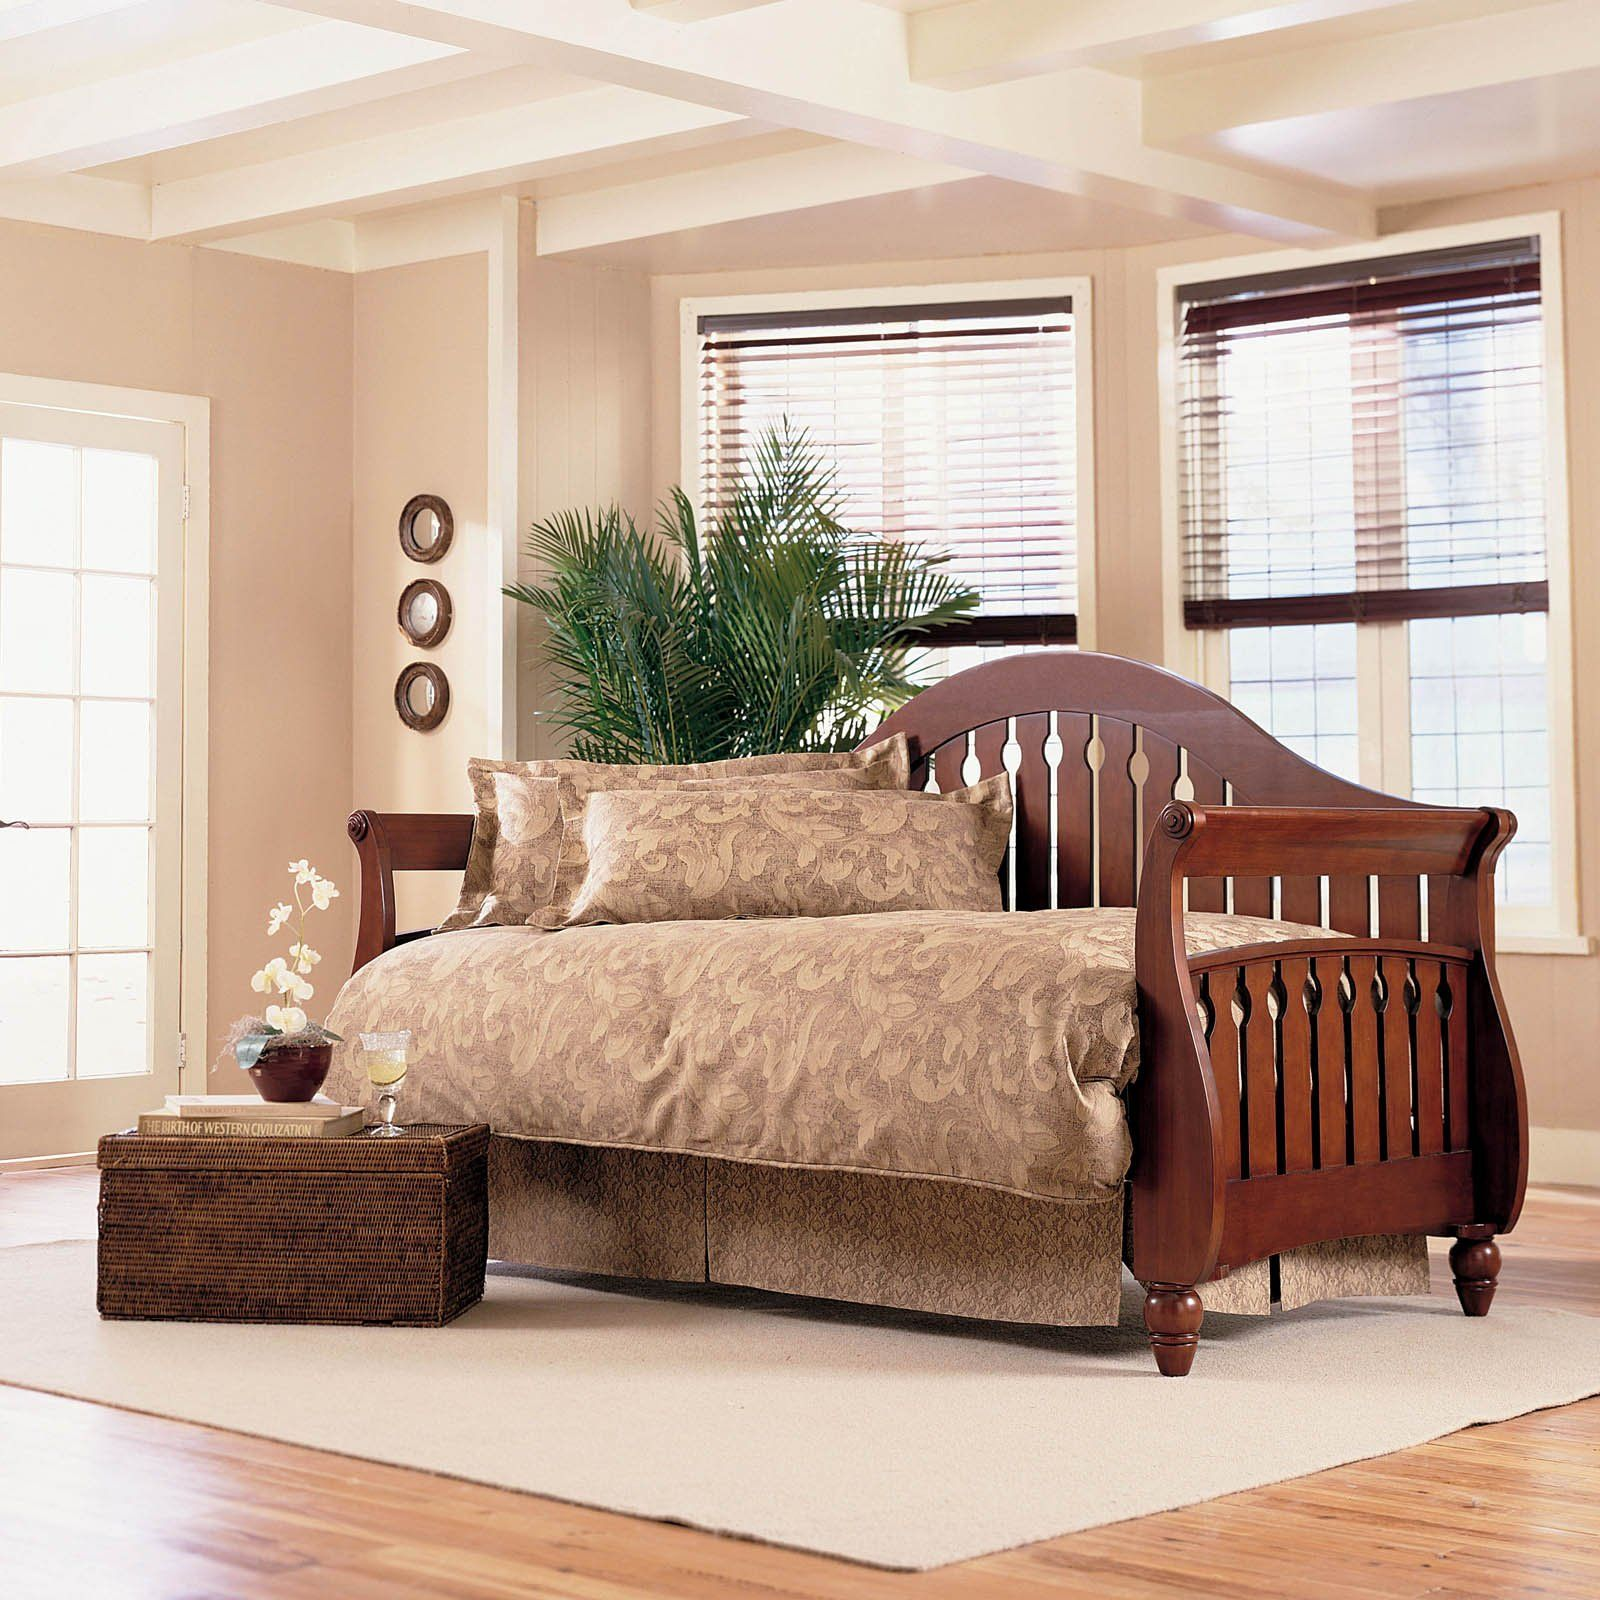 Have to have it. Fashion Bed Group Fraser Daybed 779.99